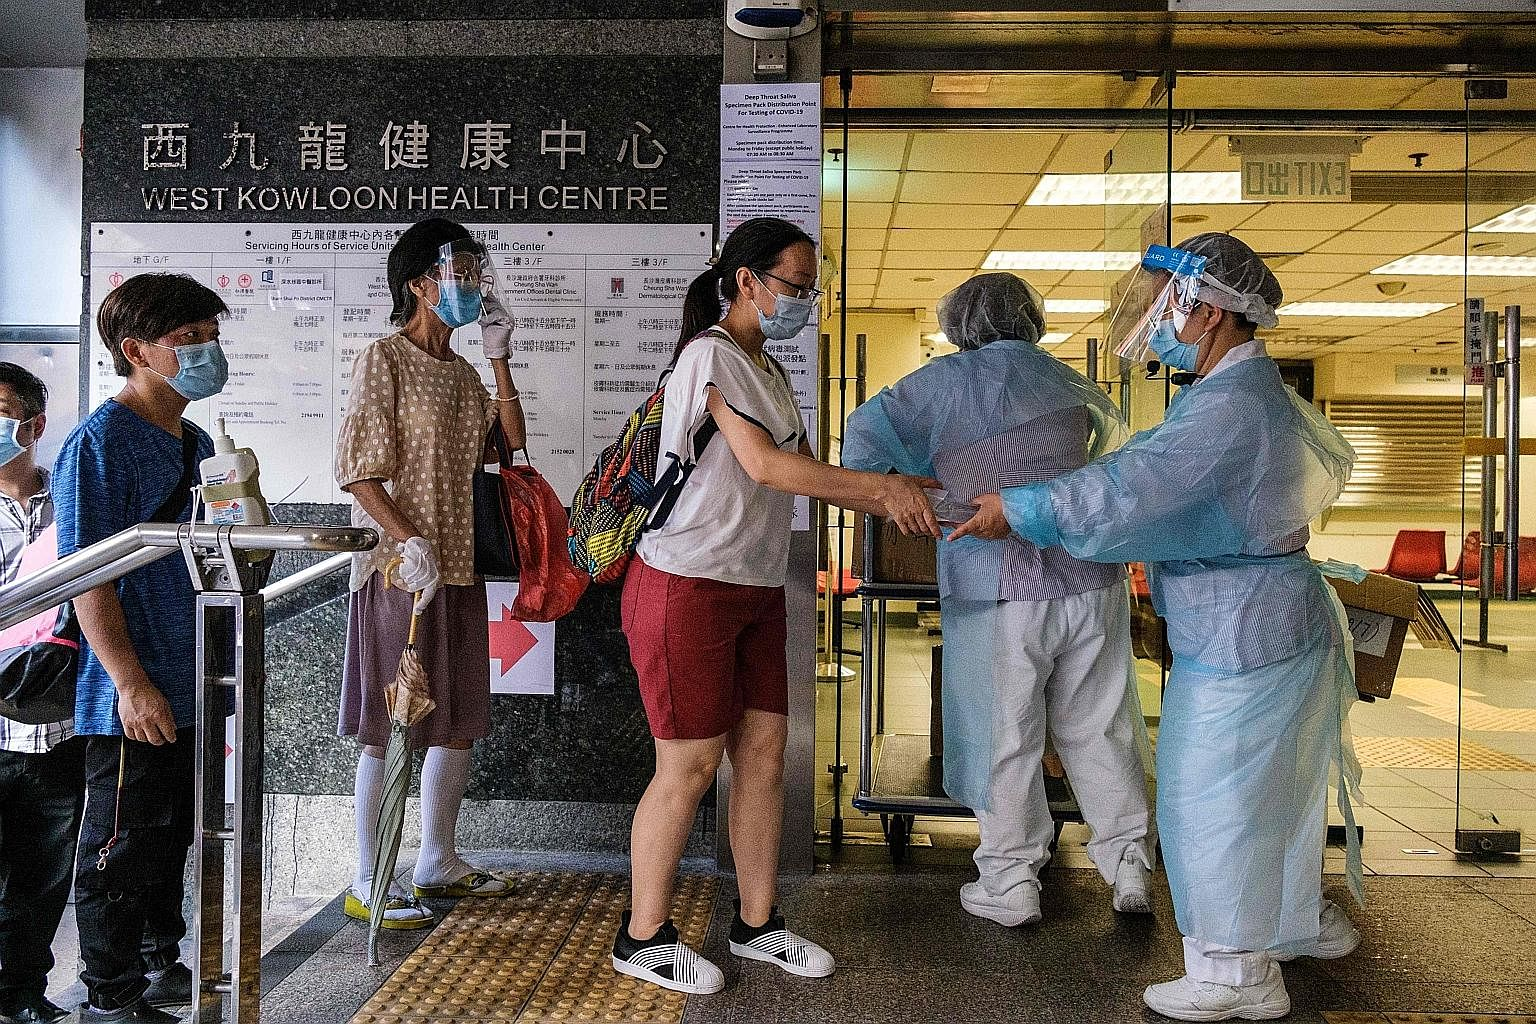 Workers at a government clinic giving out free coronavirus test kits to residents in Hong Kong's Sham Shui Po district early yesterday morning, as part of a citywide testing initiative. Hong Kong's confirmed Covid-19 infections have surpassed the 3,0